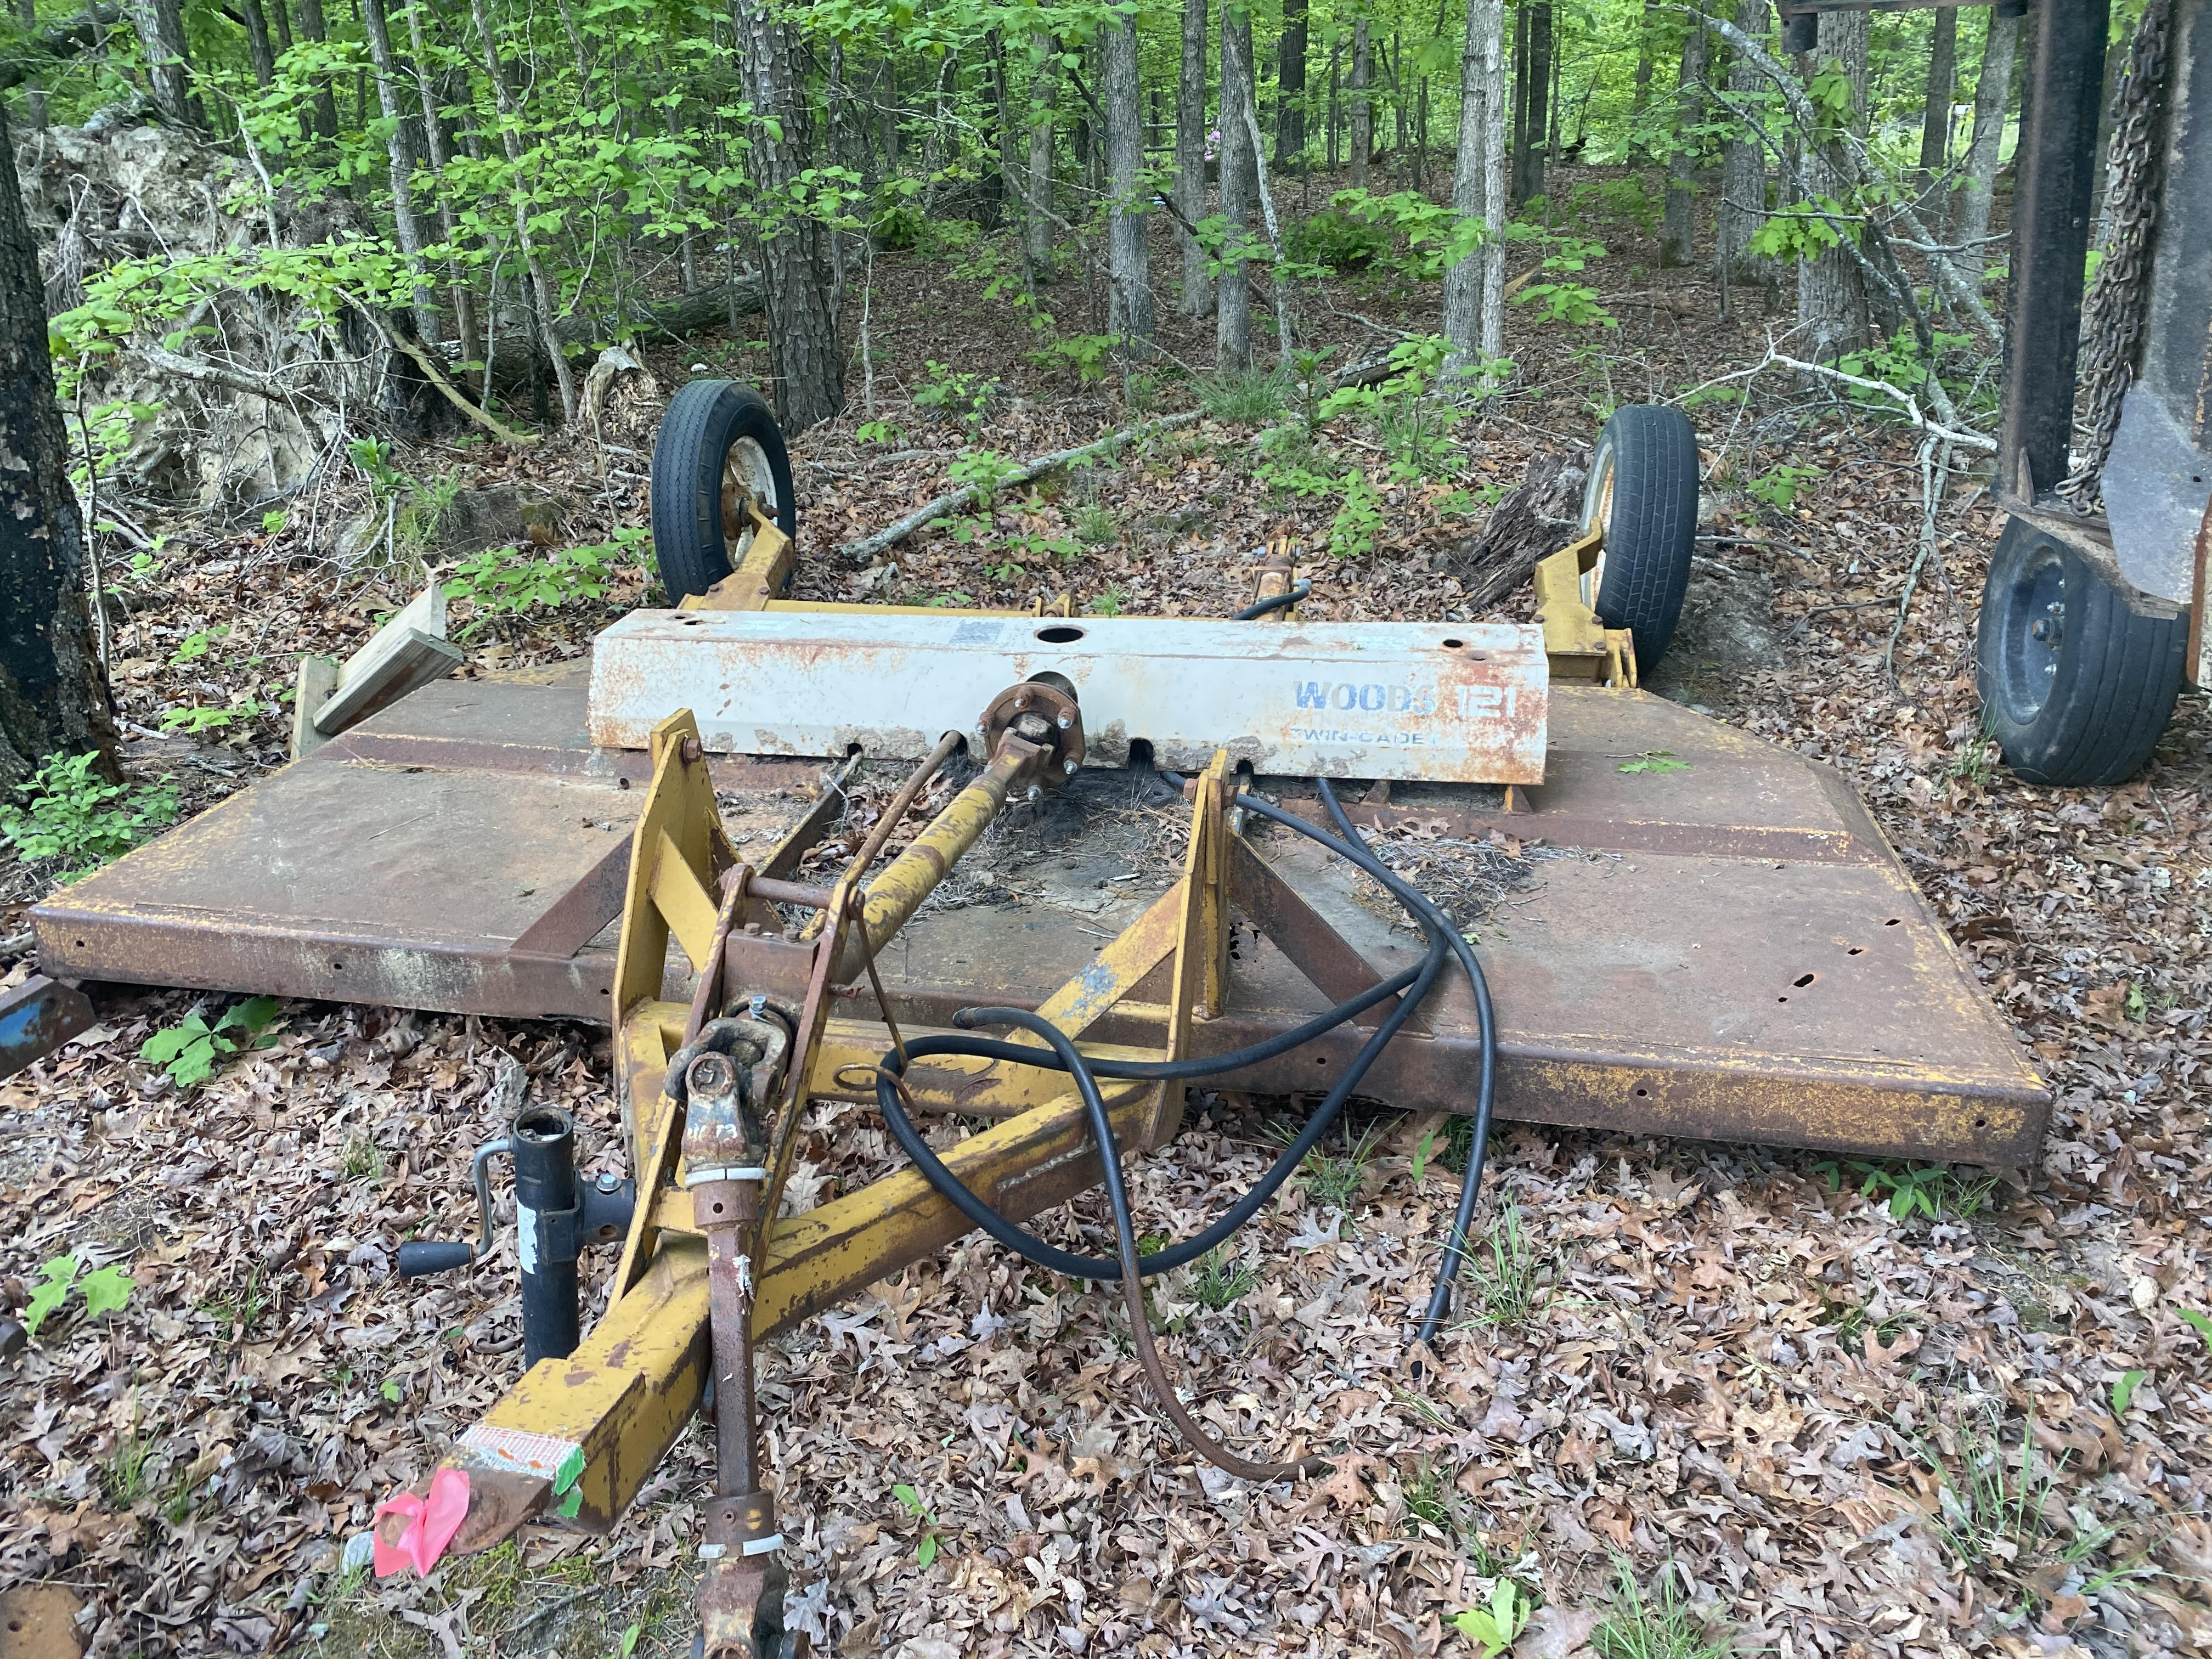 Used, 0, Woods, 121 Twine Cadet , Mower Conditioners